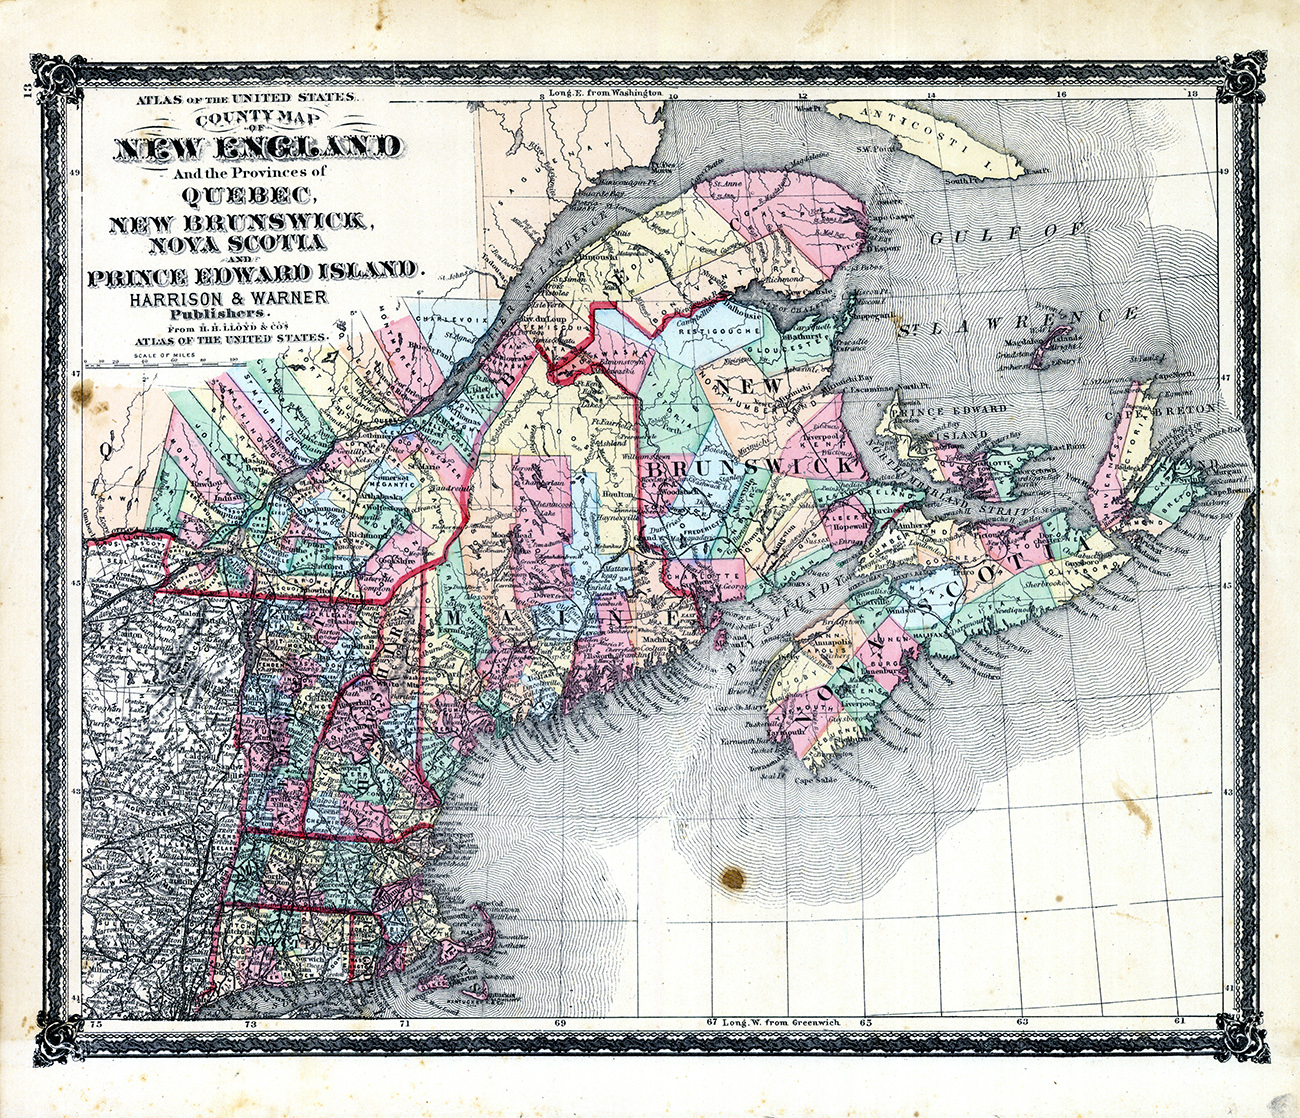 Where is New England? States, location, geography | SI.com